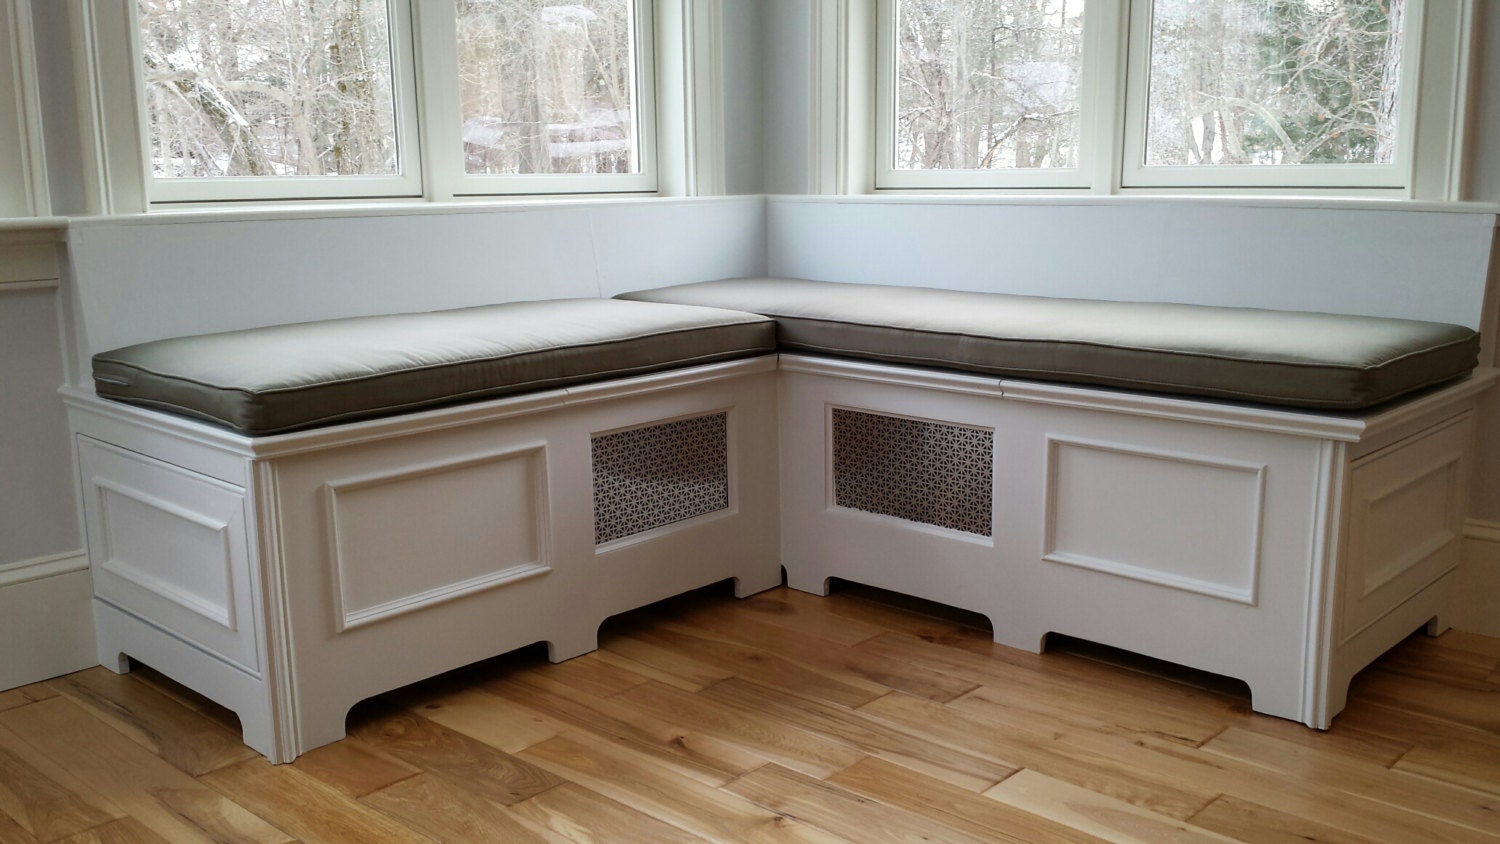 How To Make A Window Seat Out Of Kitchen Cabinets